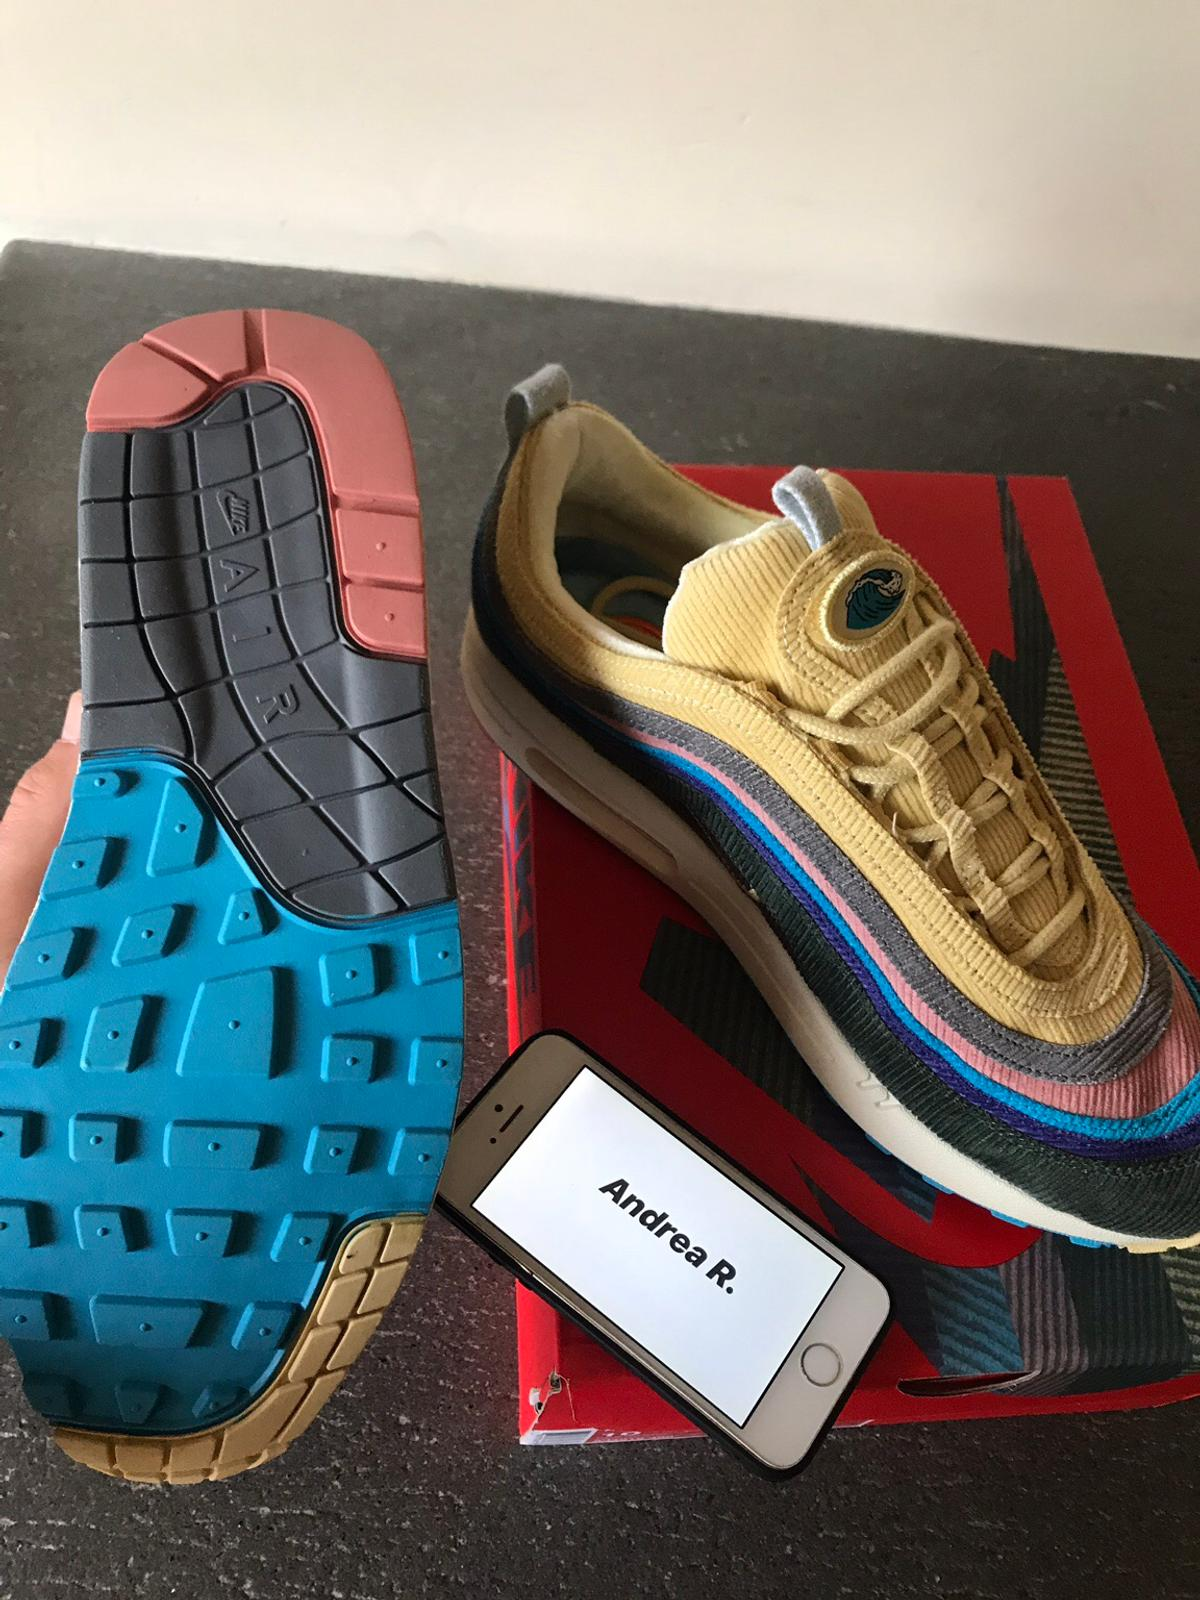 Air Max 971 Sean Wotherspoon in 00053 Civitavecchia for